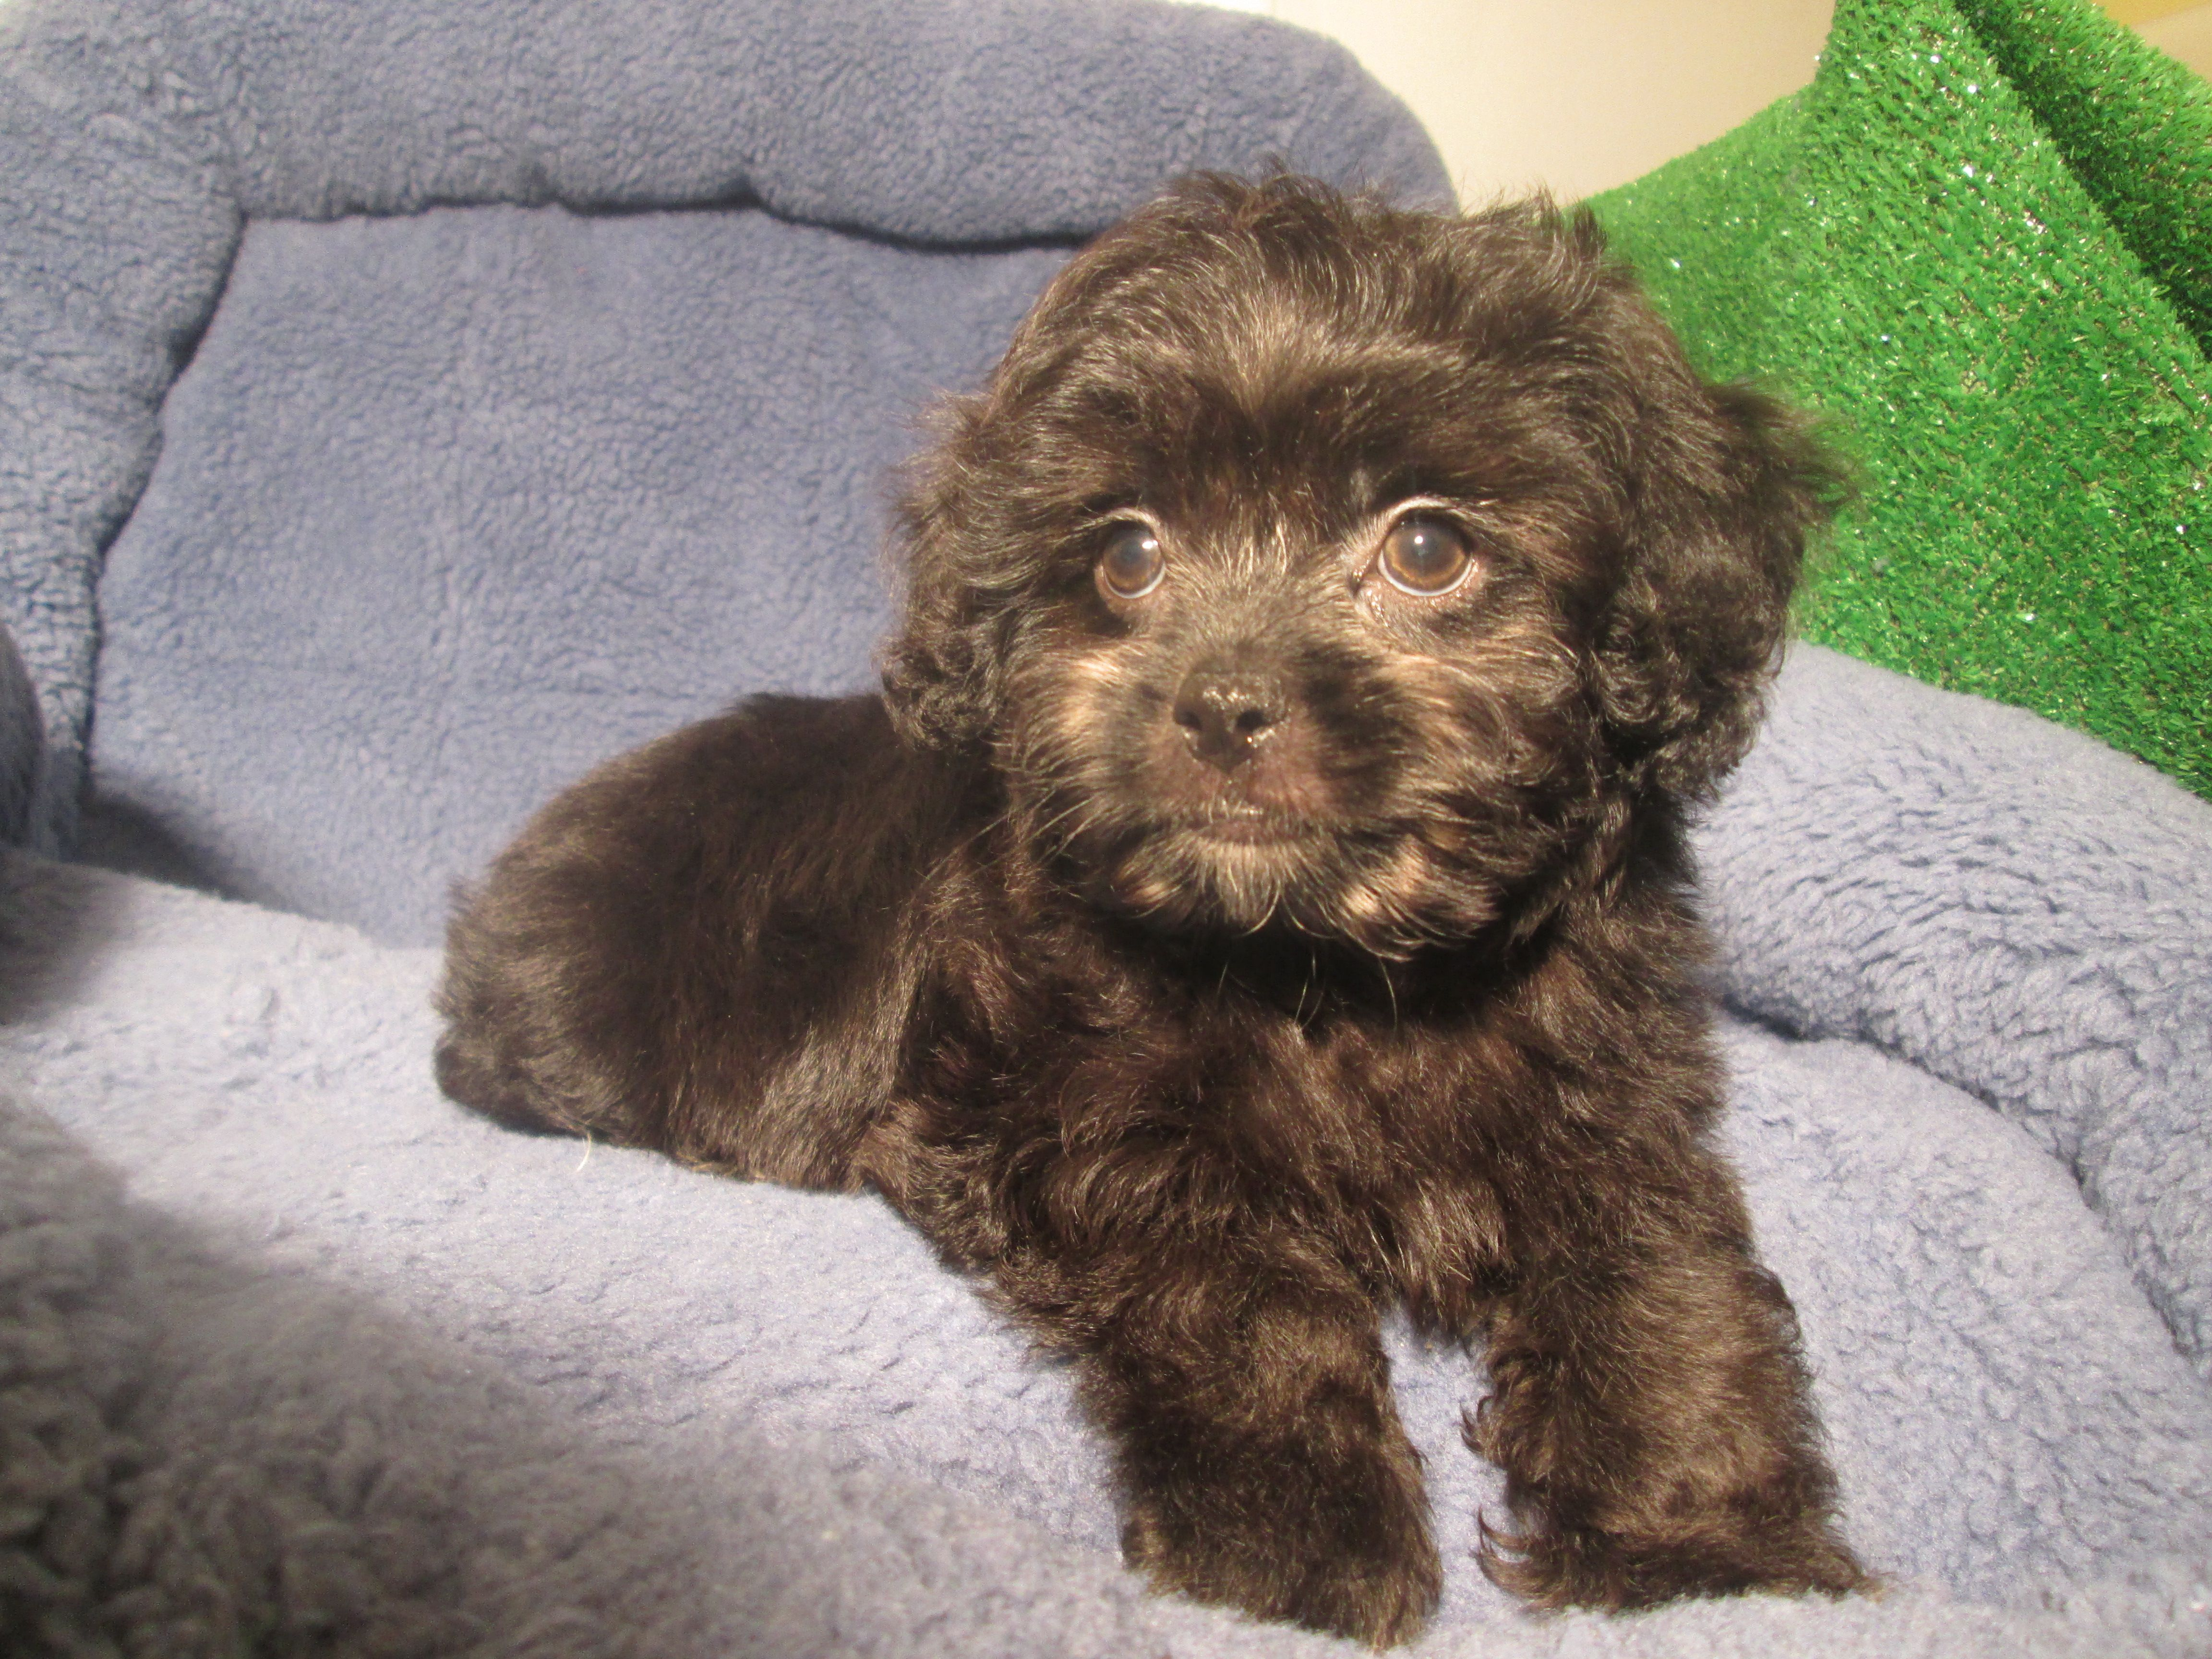 Loving Lhasapoo Puppies Available! (Lhasa Apso x Poodle